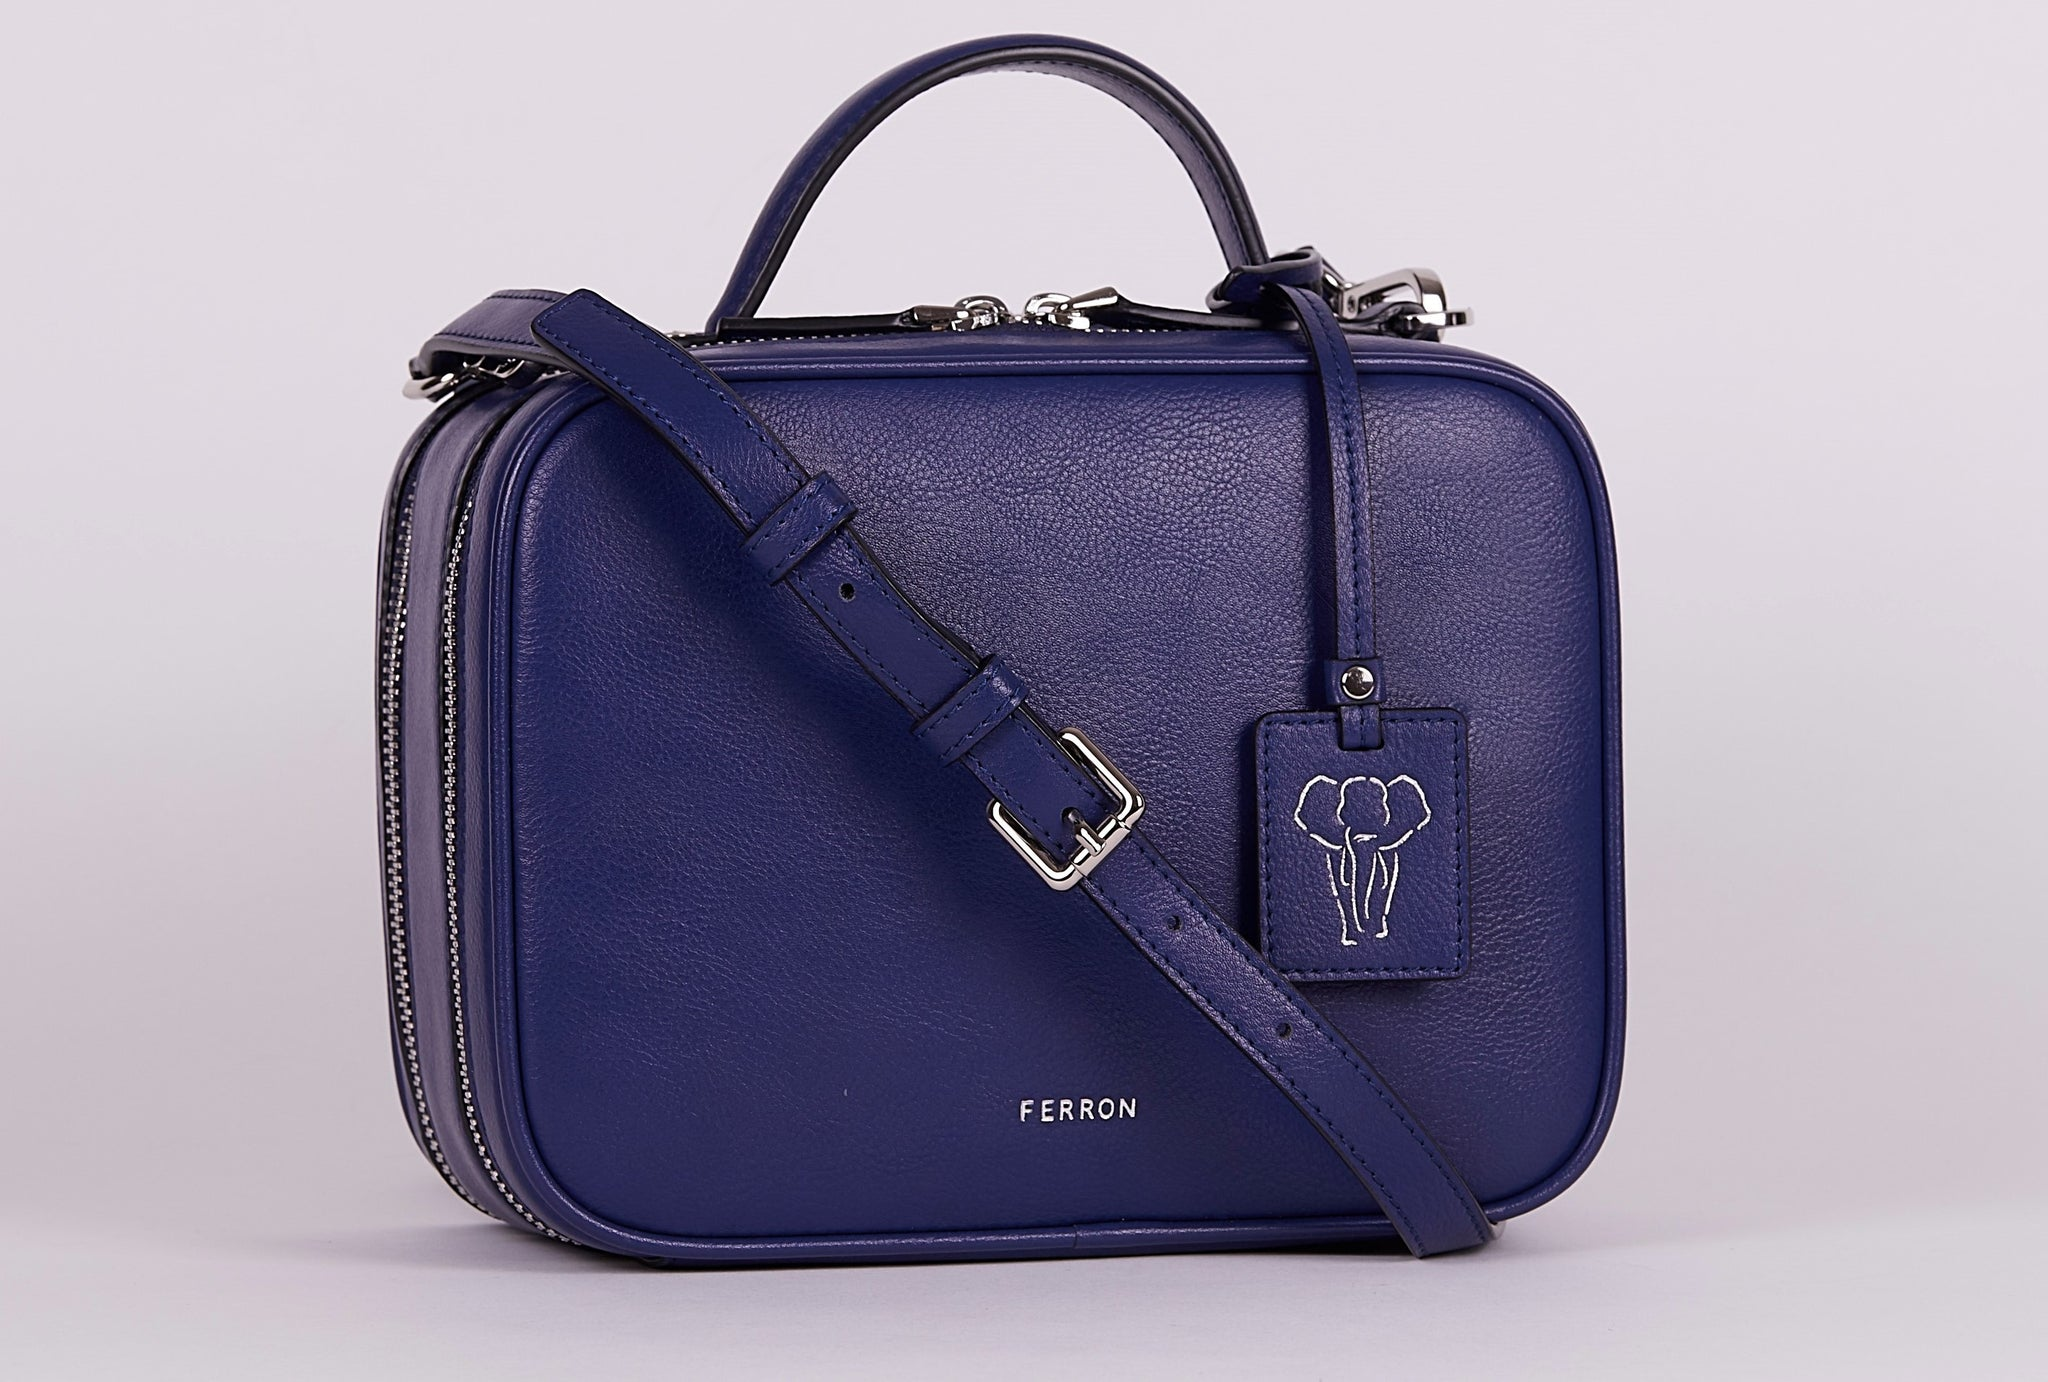 FERRON Vegan Signature Crossbody bag in blue